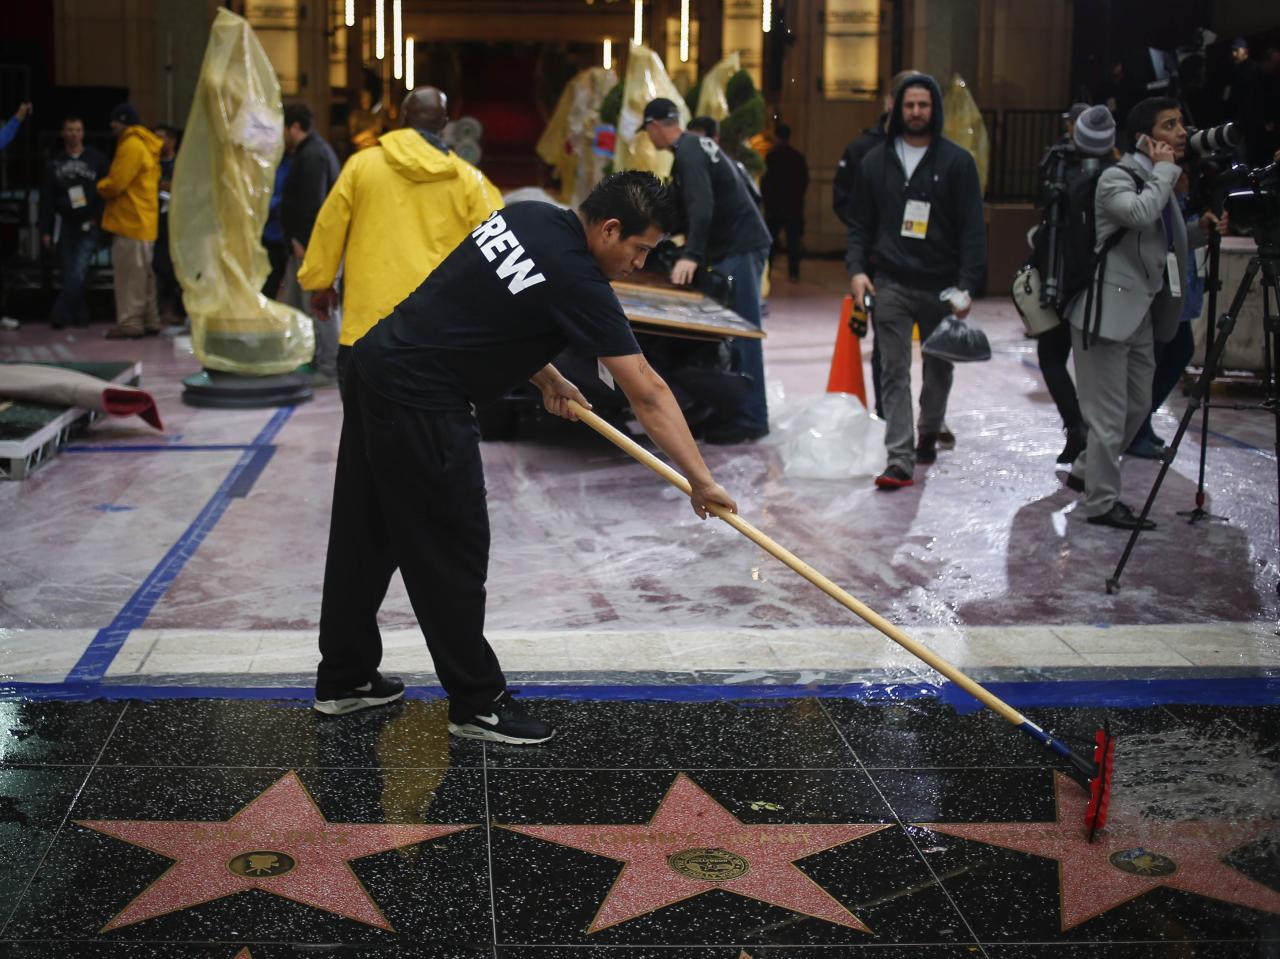 A man clears rain water from the entrance of the Dolby Theater ahead of the 86th Academy Awards in Hollywood, California March 1, 2014. The Oscars which will be presented at the Dolby Theater on March 2, 2014. REUTERS/Adrees Latif (UNITED STATES - Tags: ENTERTAINMENT)